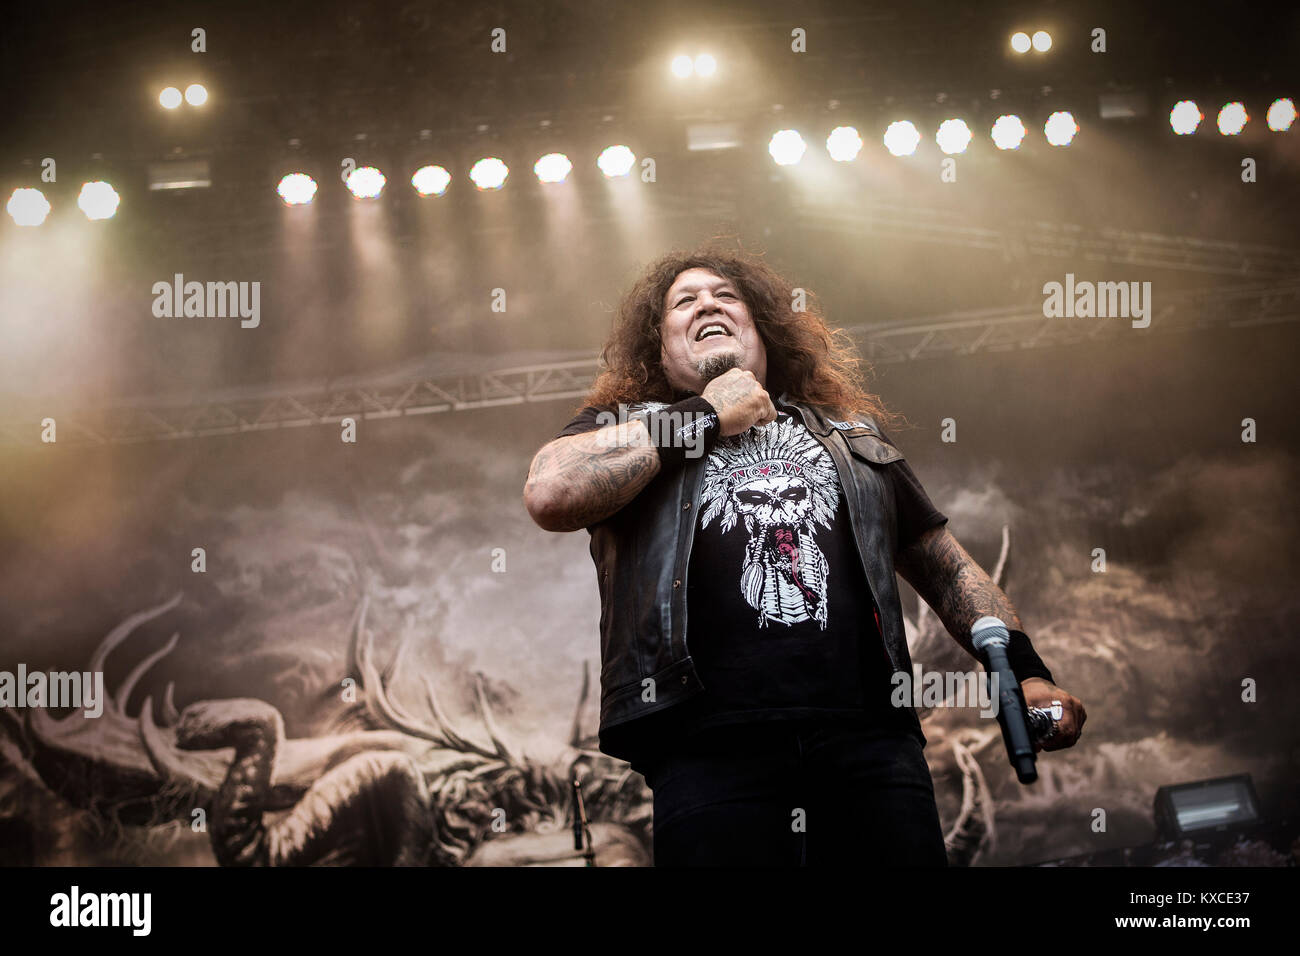 The American Trash Metal Band Testament Performs A Live Concert At Danish Heavy Festival Copenhell 2013 In Copenhagen Is Often Credited